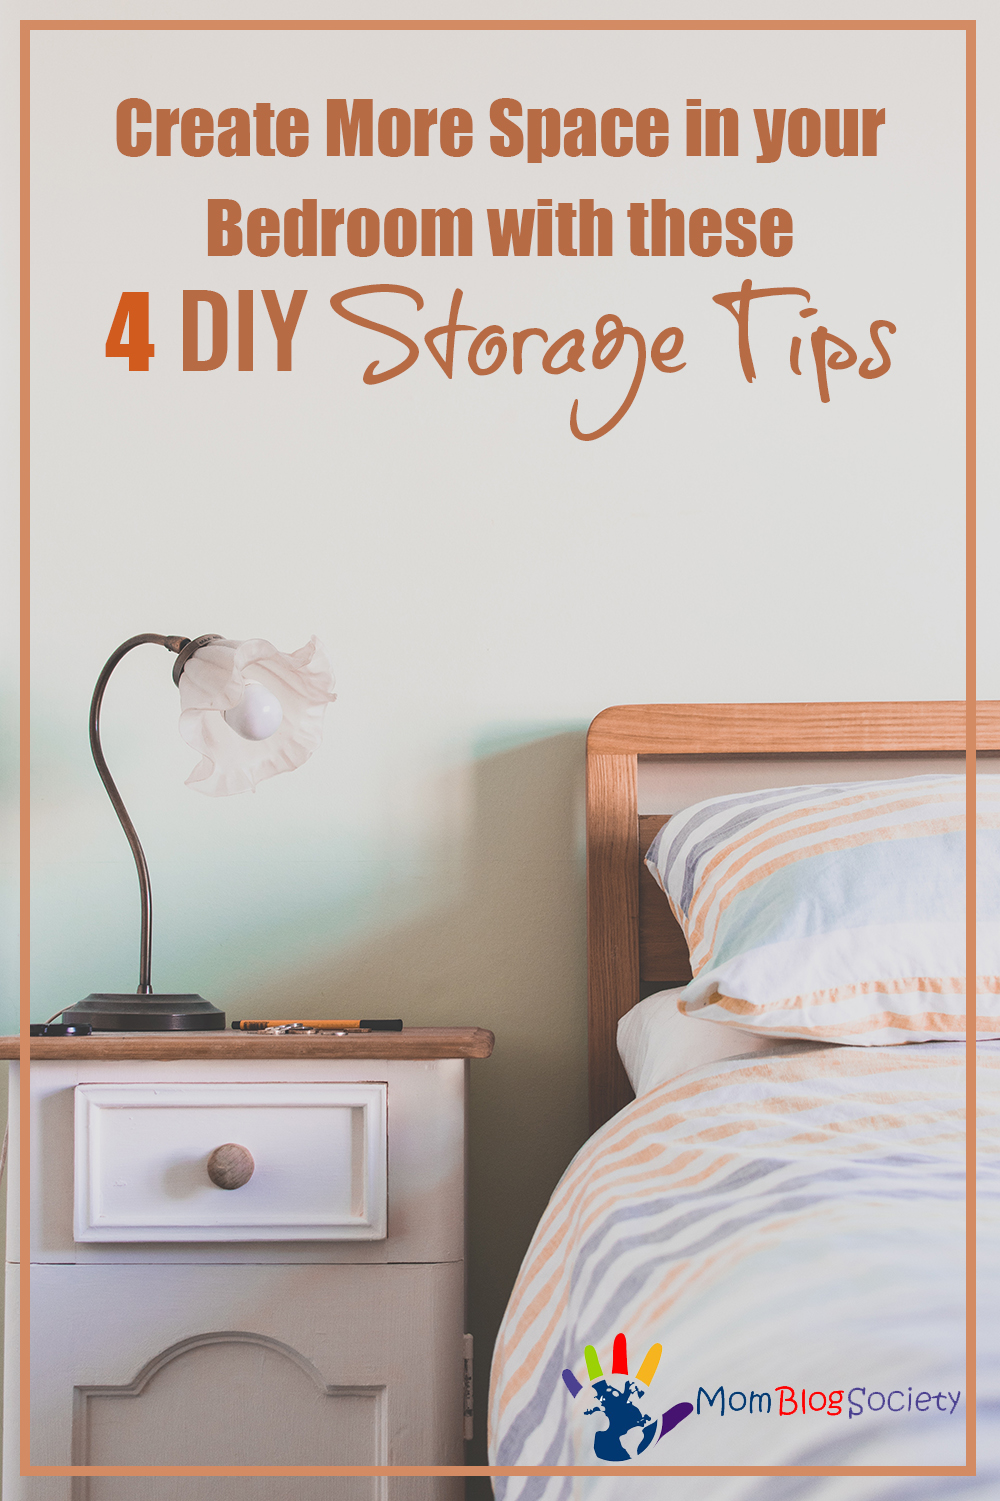 Create More Space In Your Bedroom With These 4 DIY Storage Tips   Mom Blog  Society